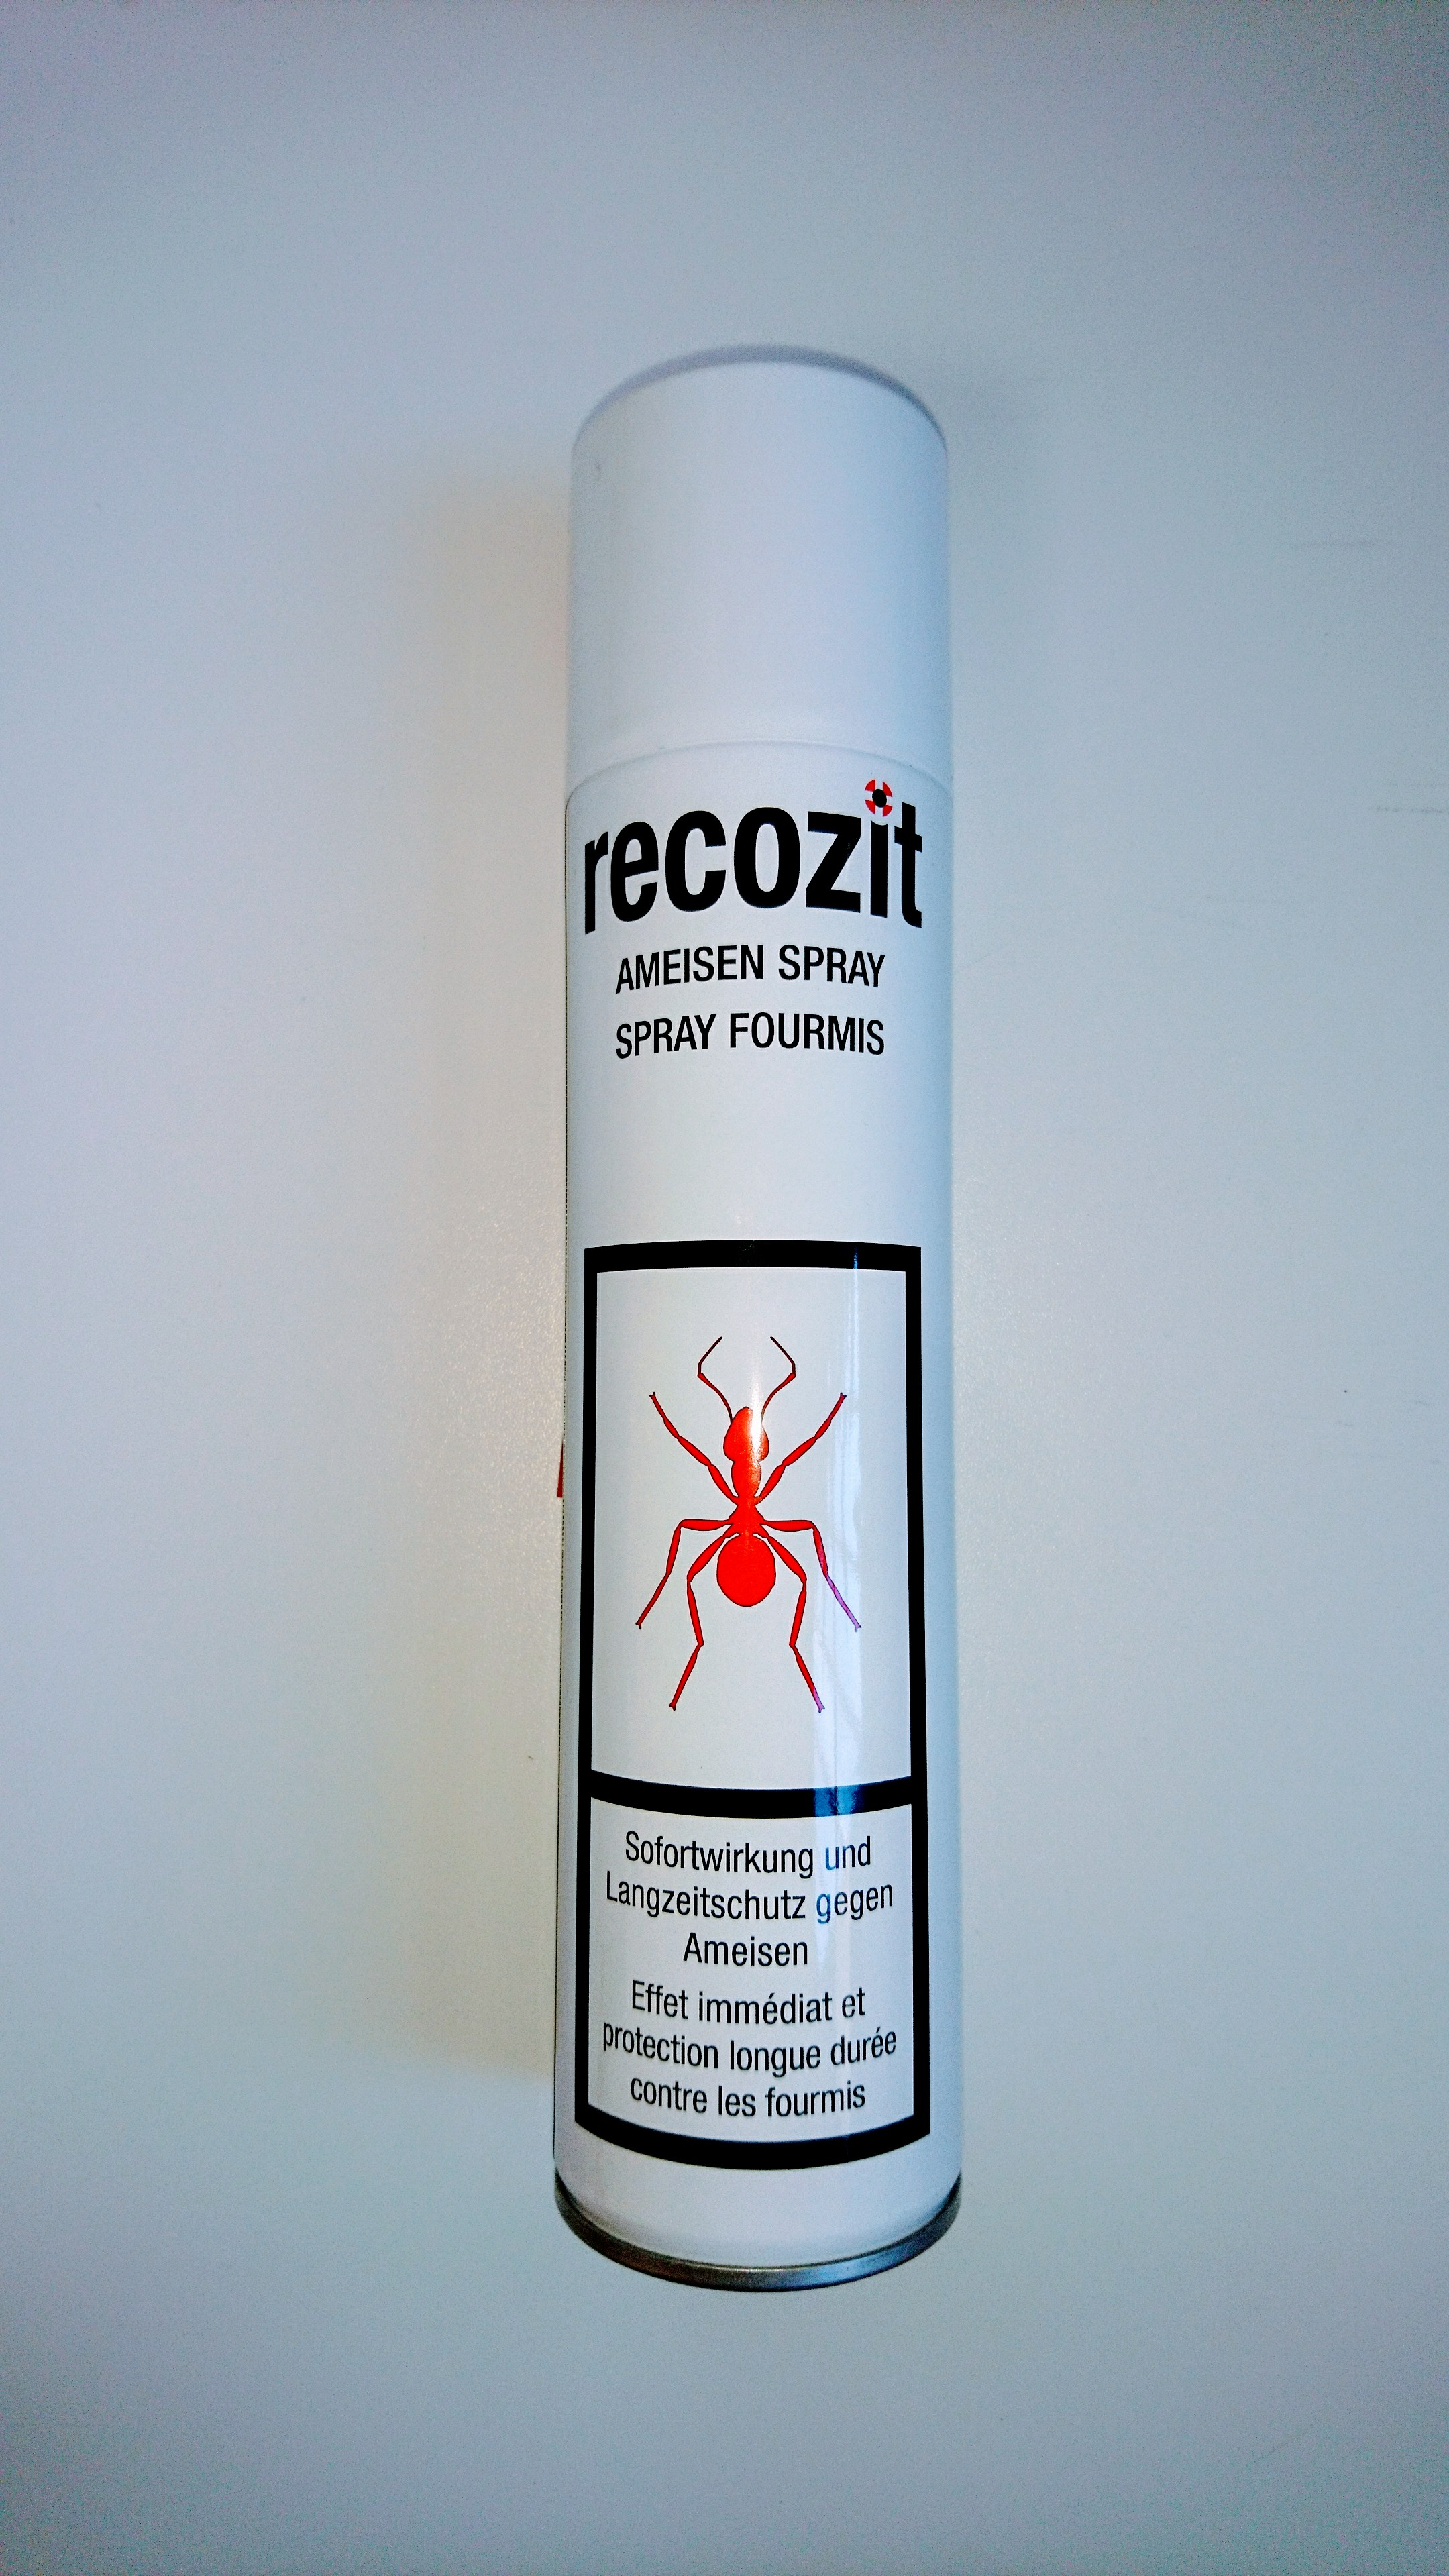 recozit anti fourmis spray 400ml 261 chf pharmacie et droguerie de st sulpice. Black Bedroom Furniture Sets. Home Design Ideas